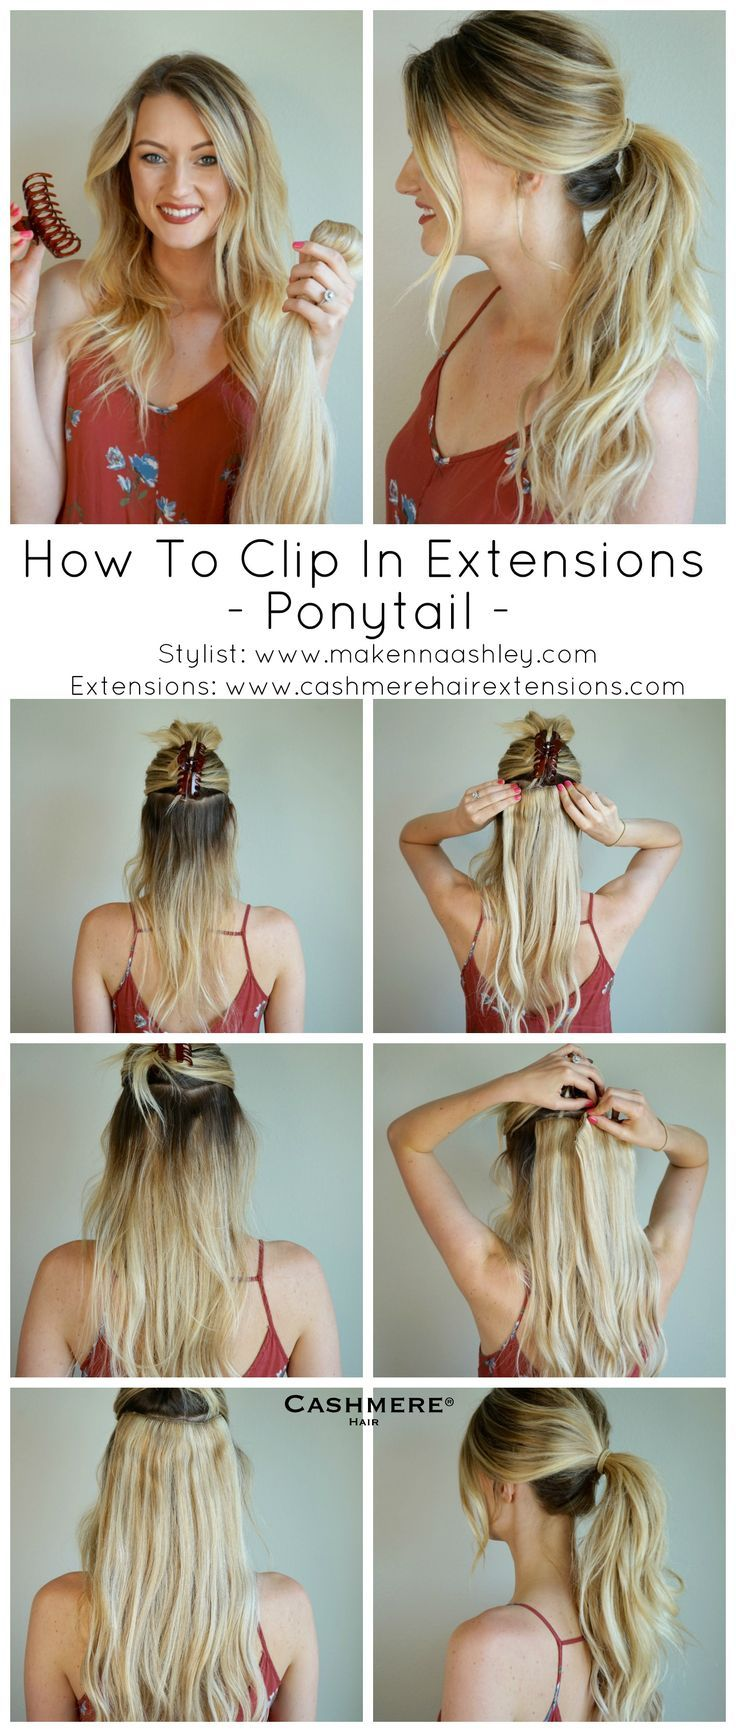 Clip extensions large clawclip hair styles ponytail